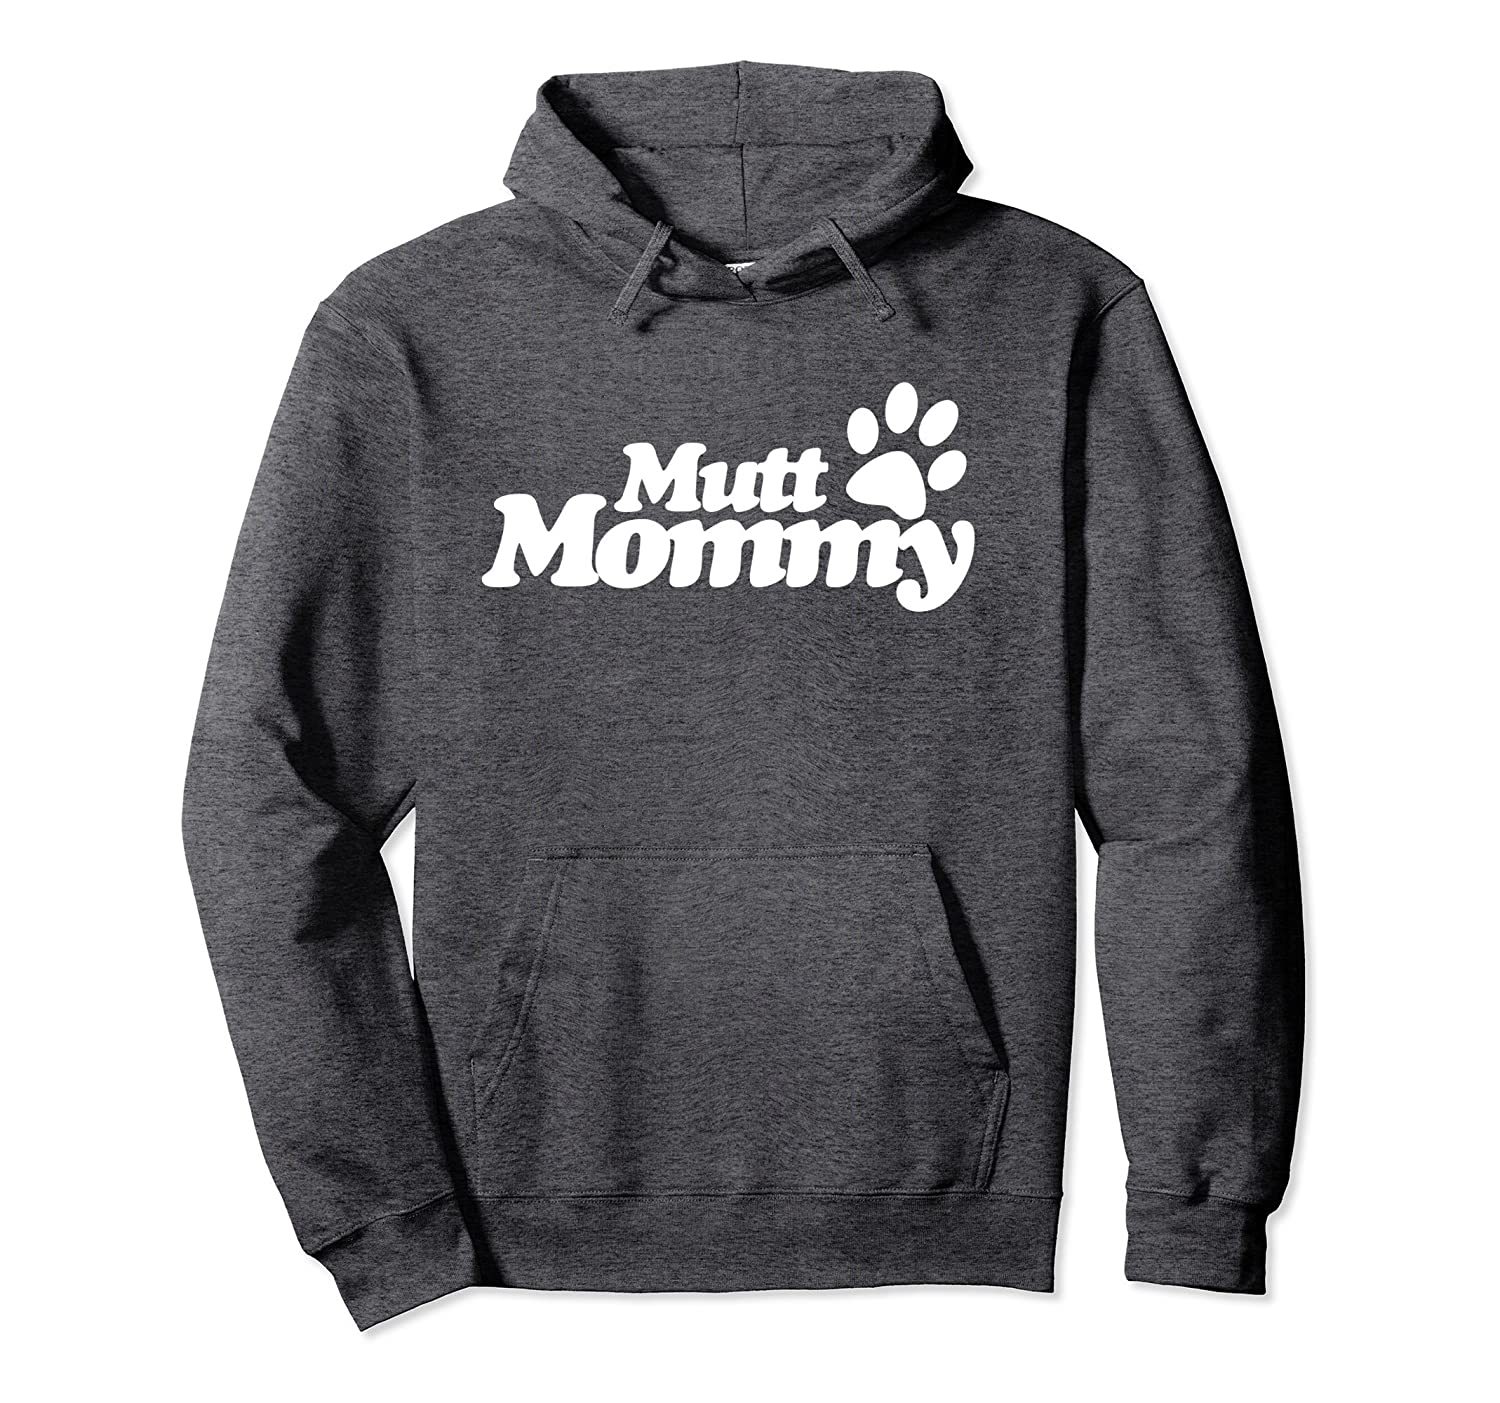 Mutt mommy pullover hoodie design I love my mutts art hoodie-Colonhue